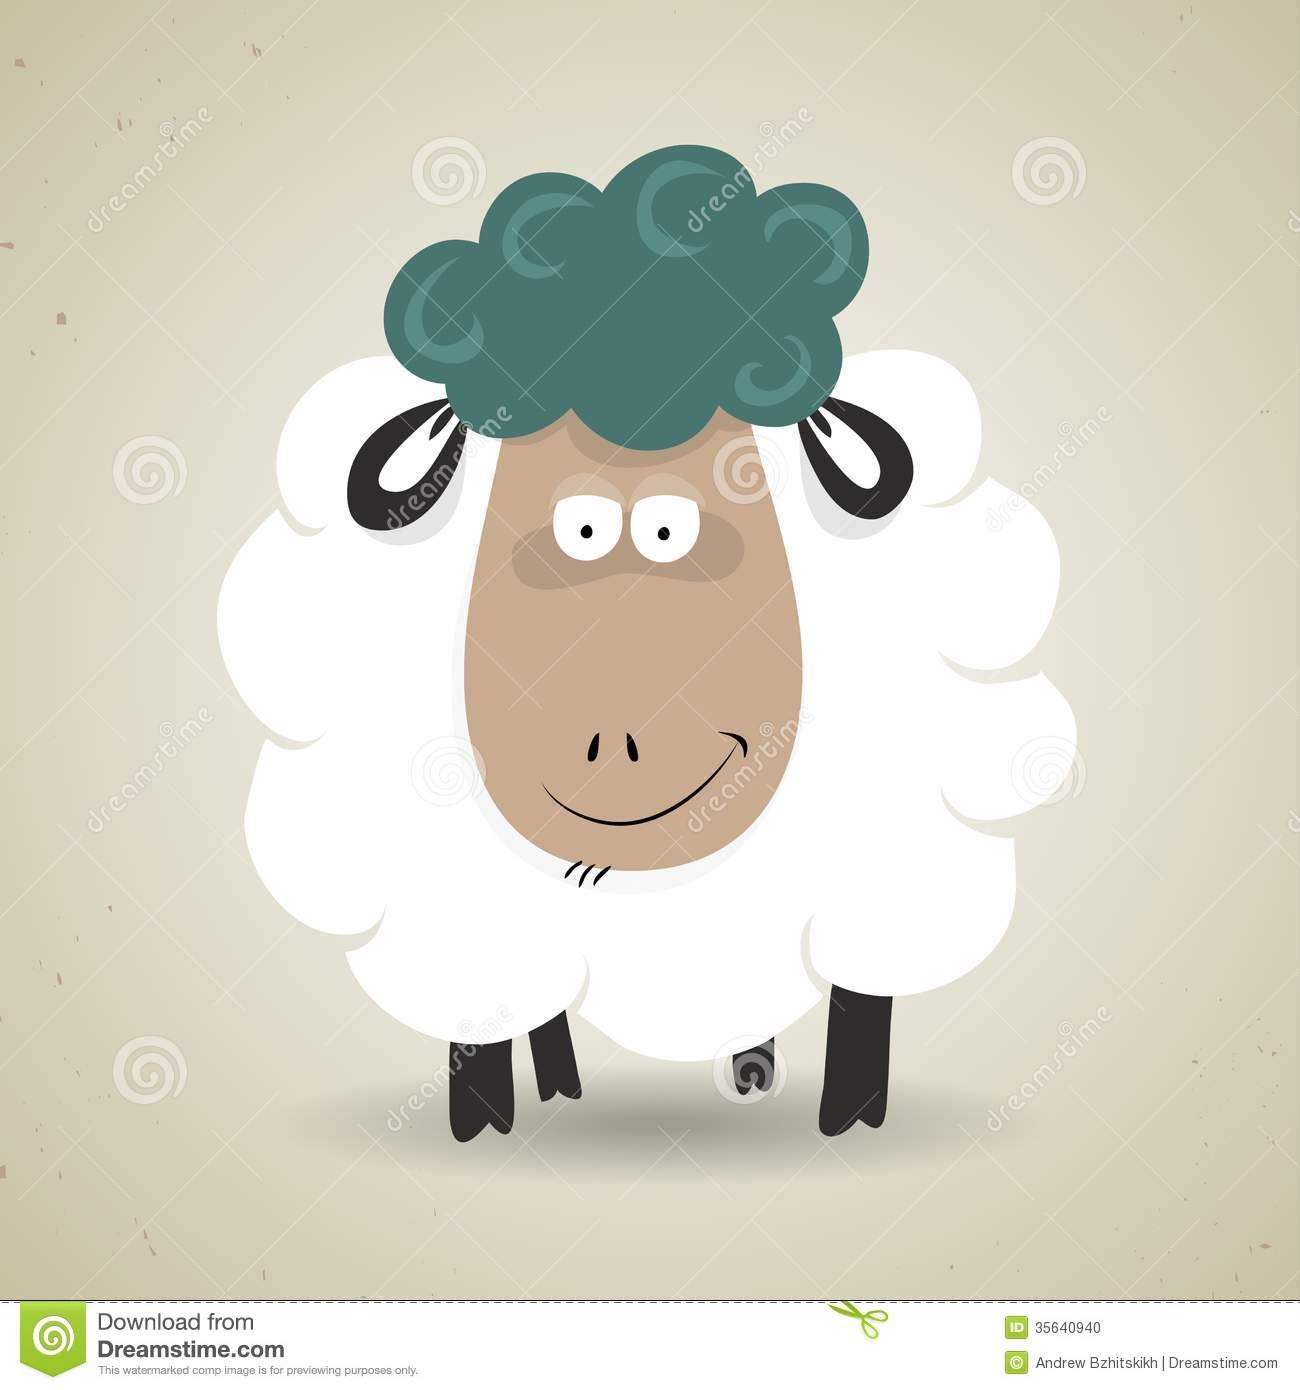 Cute Sheep Drawing Tumblr Cute Cartoon Smiling Sheep Standing Facing The Stock